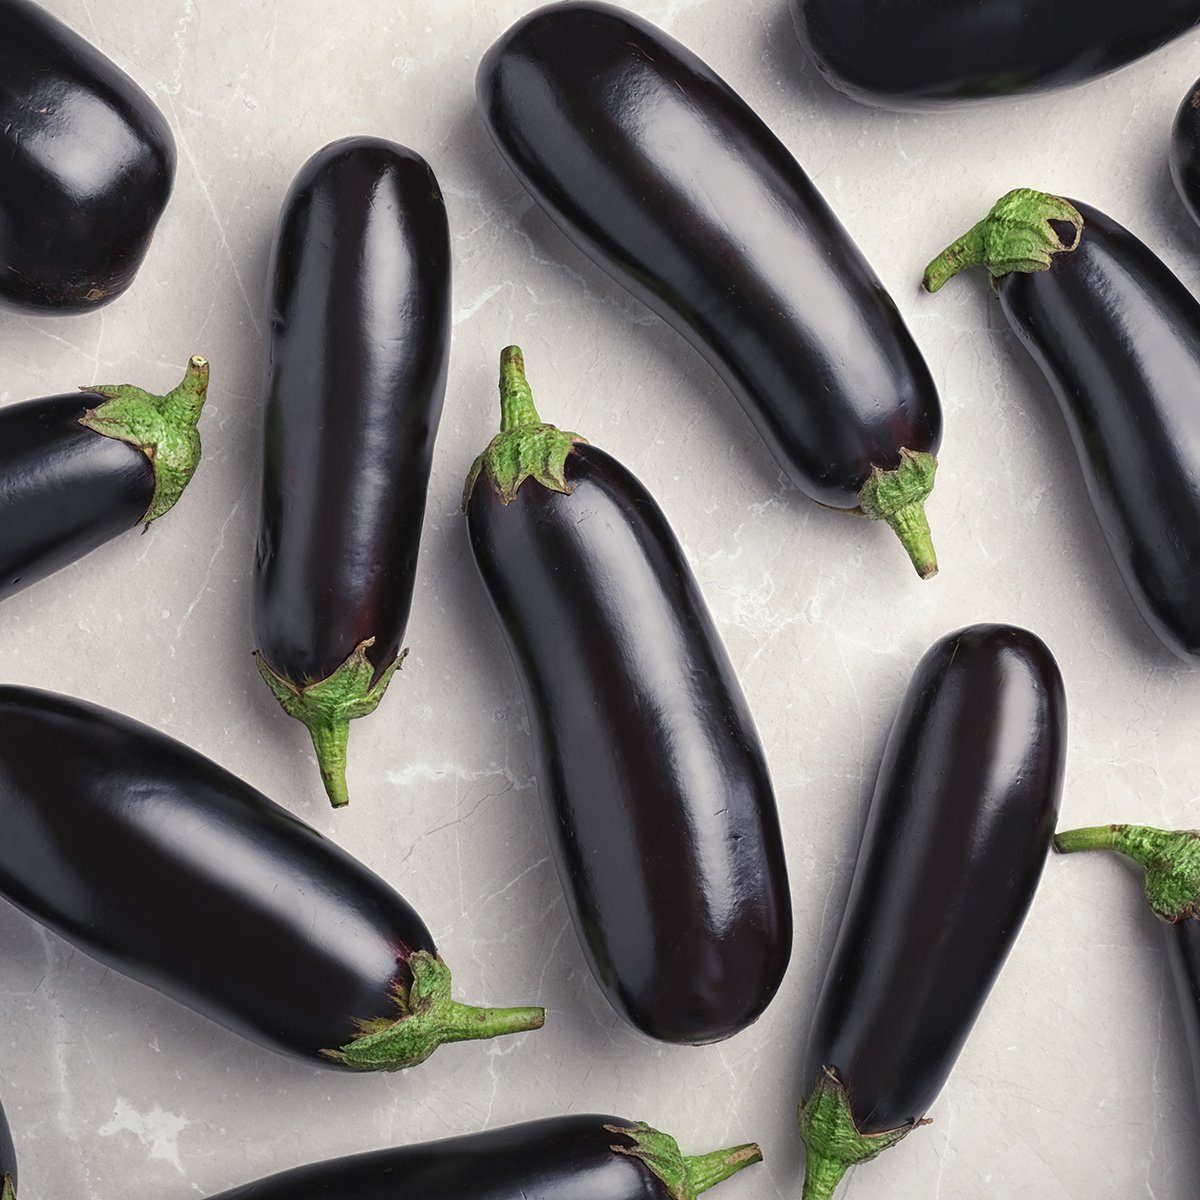 Raw ripe eggplants on light background